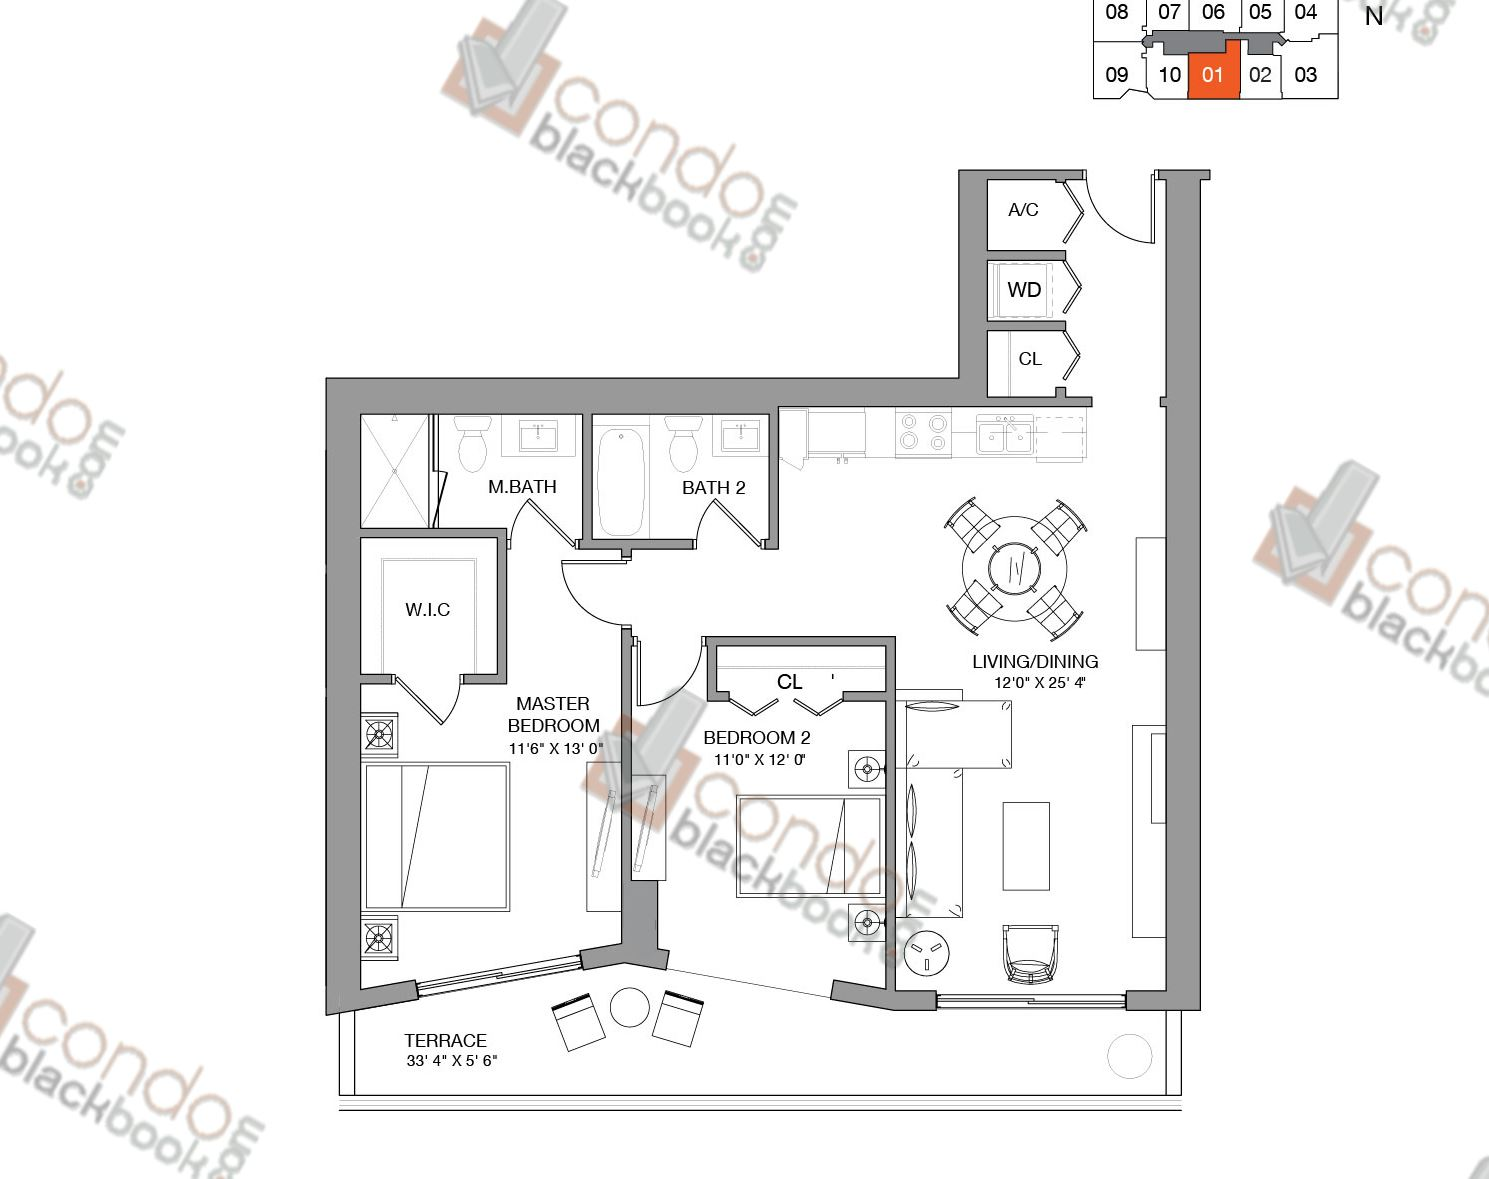 Floor plan for Brickell Ten Brickell Miami, model Residence One, line 01, 2/2 bedrooms, 1,064 sq ft